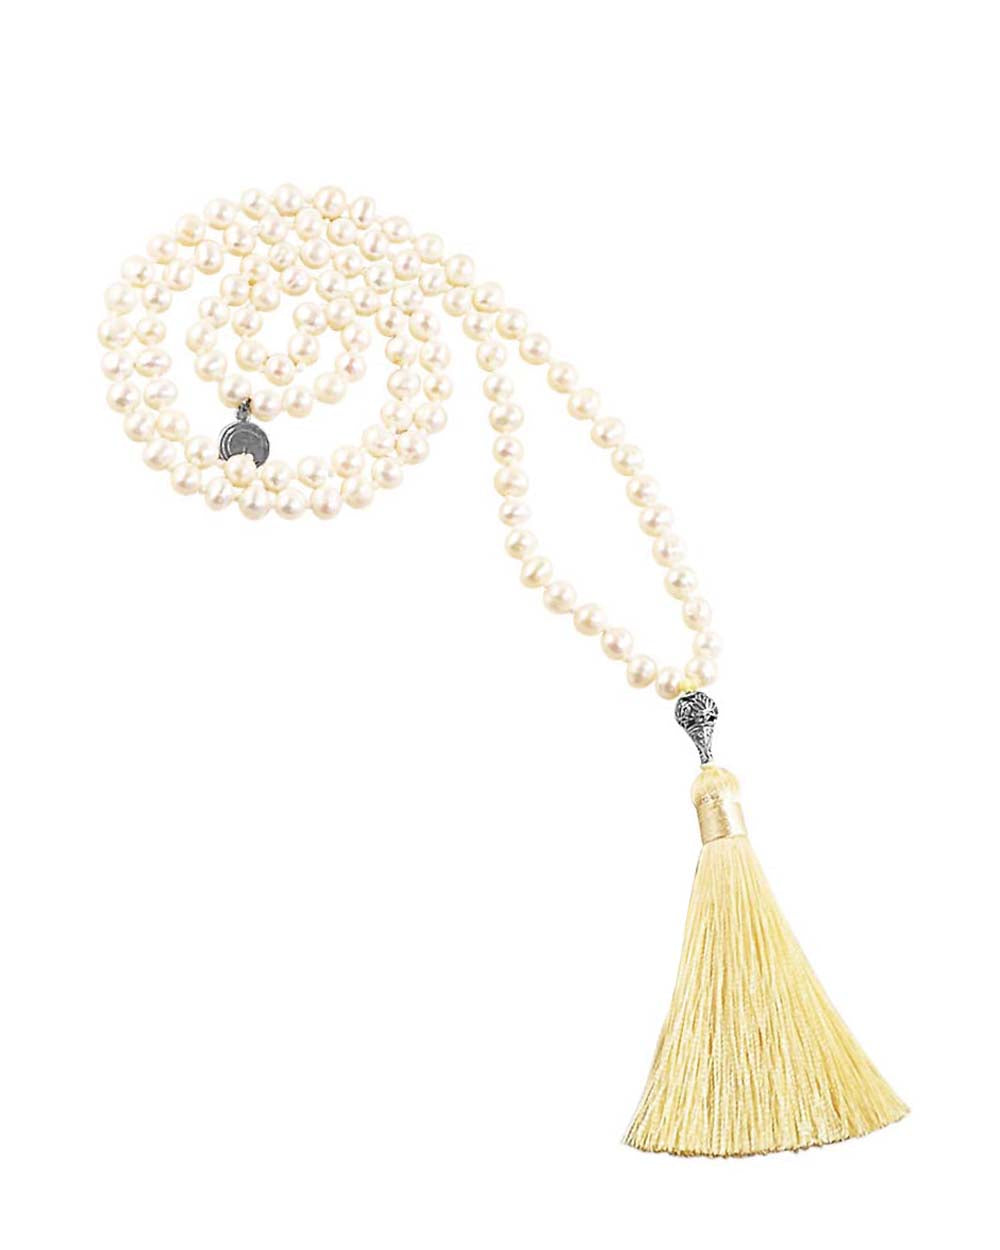 Water Element White Pearl 108 Beads Mala with Silver Lotus Guru Bead